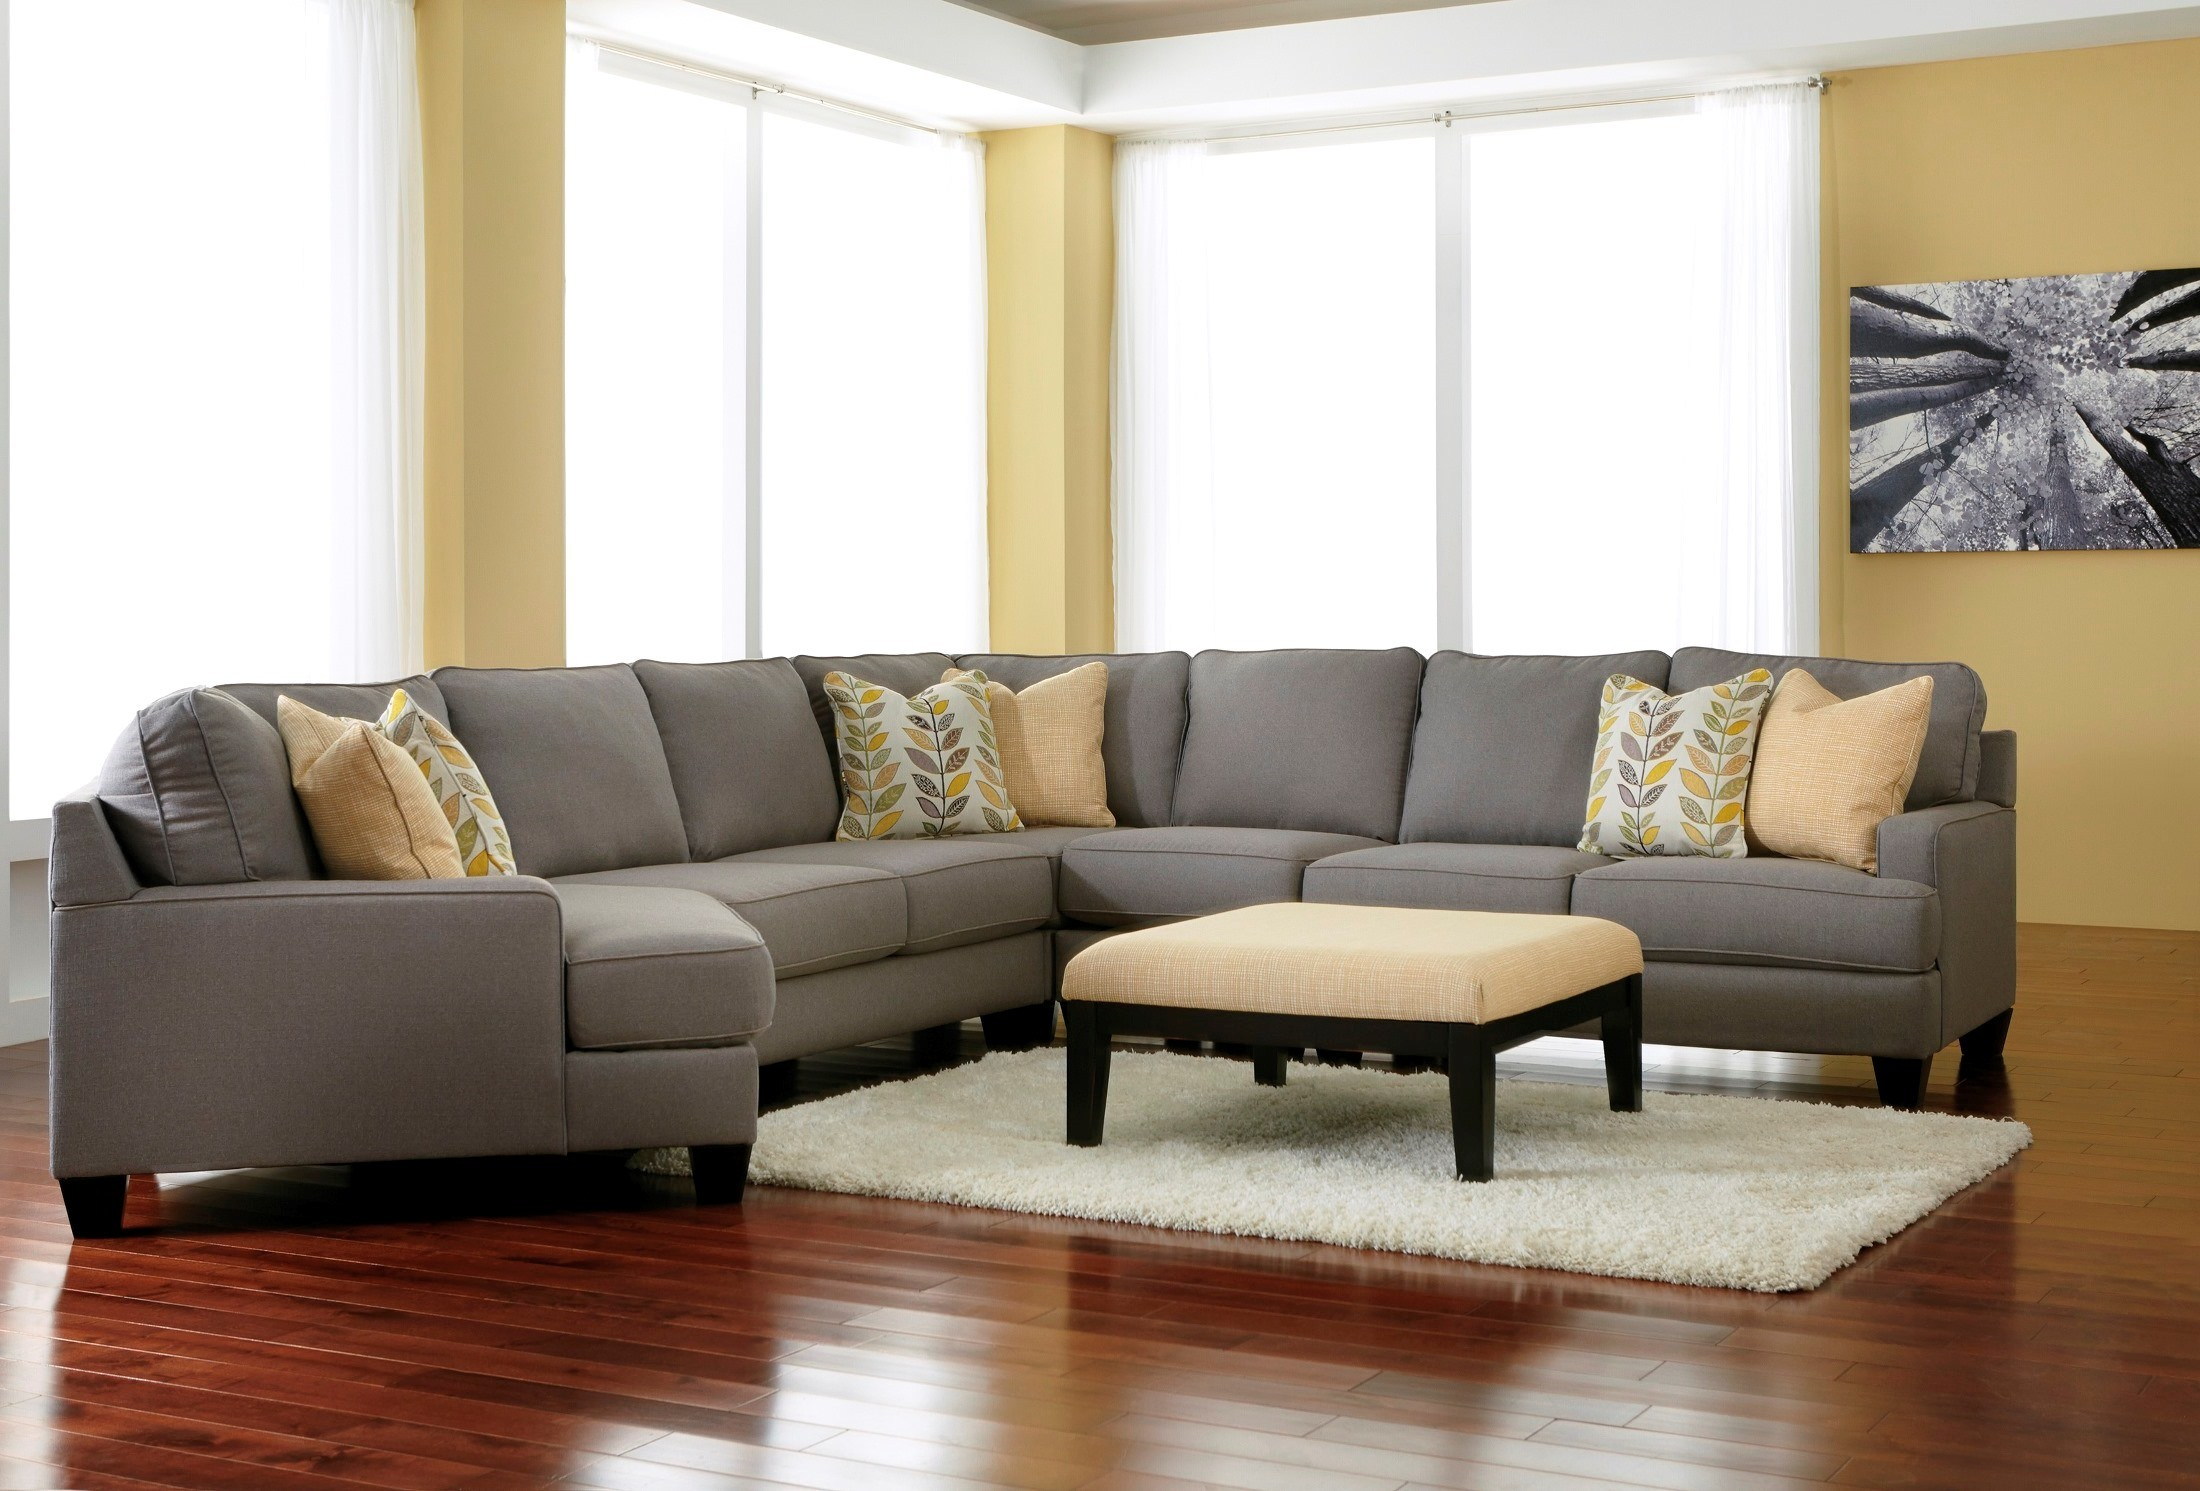 Chamberly Alloy LAF Cuddler Sectional From Ashley (2430216) | Coleman  Furniture